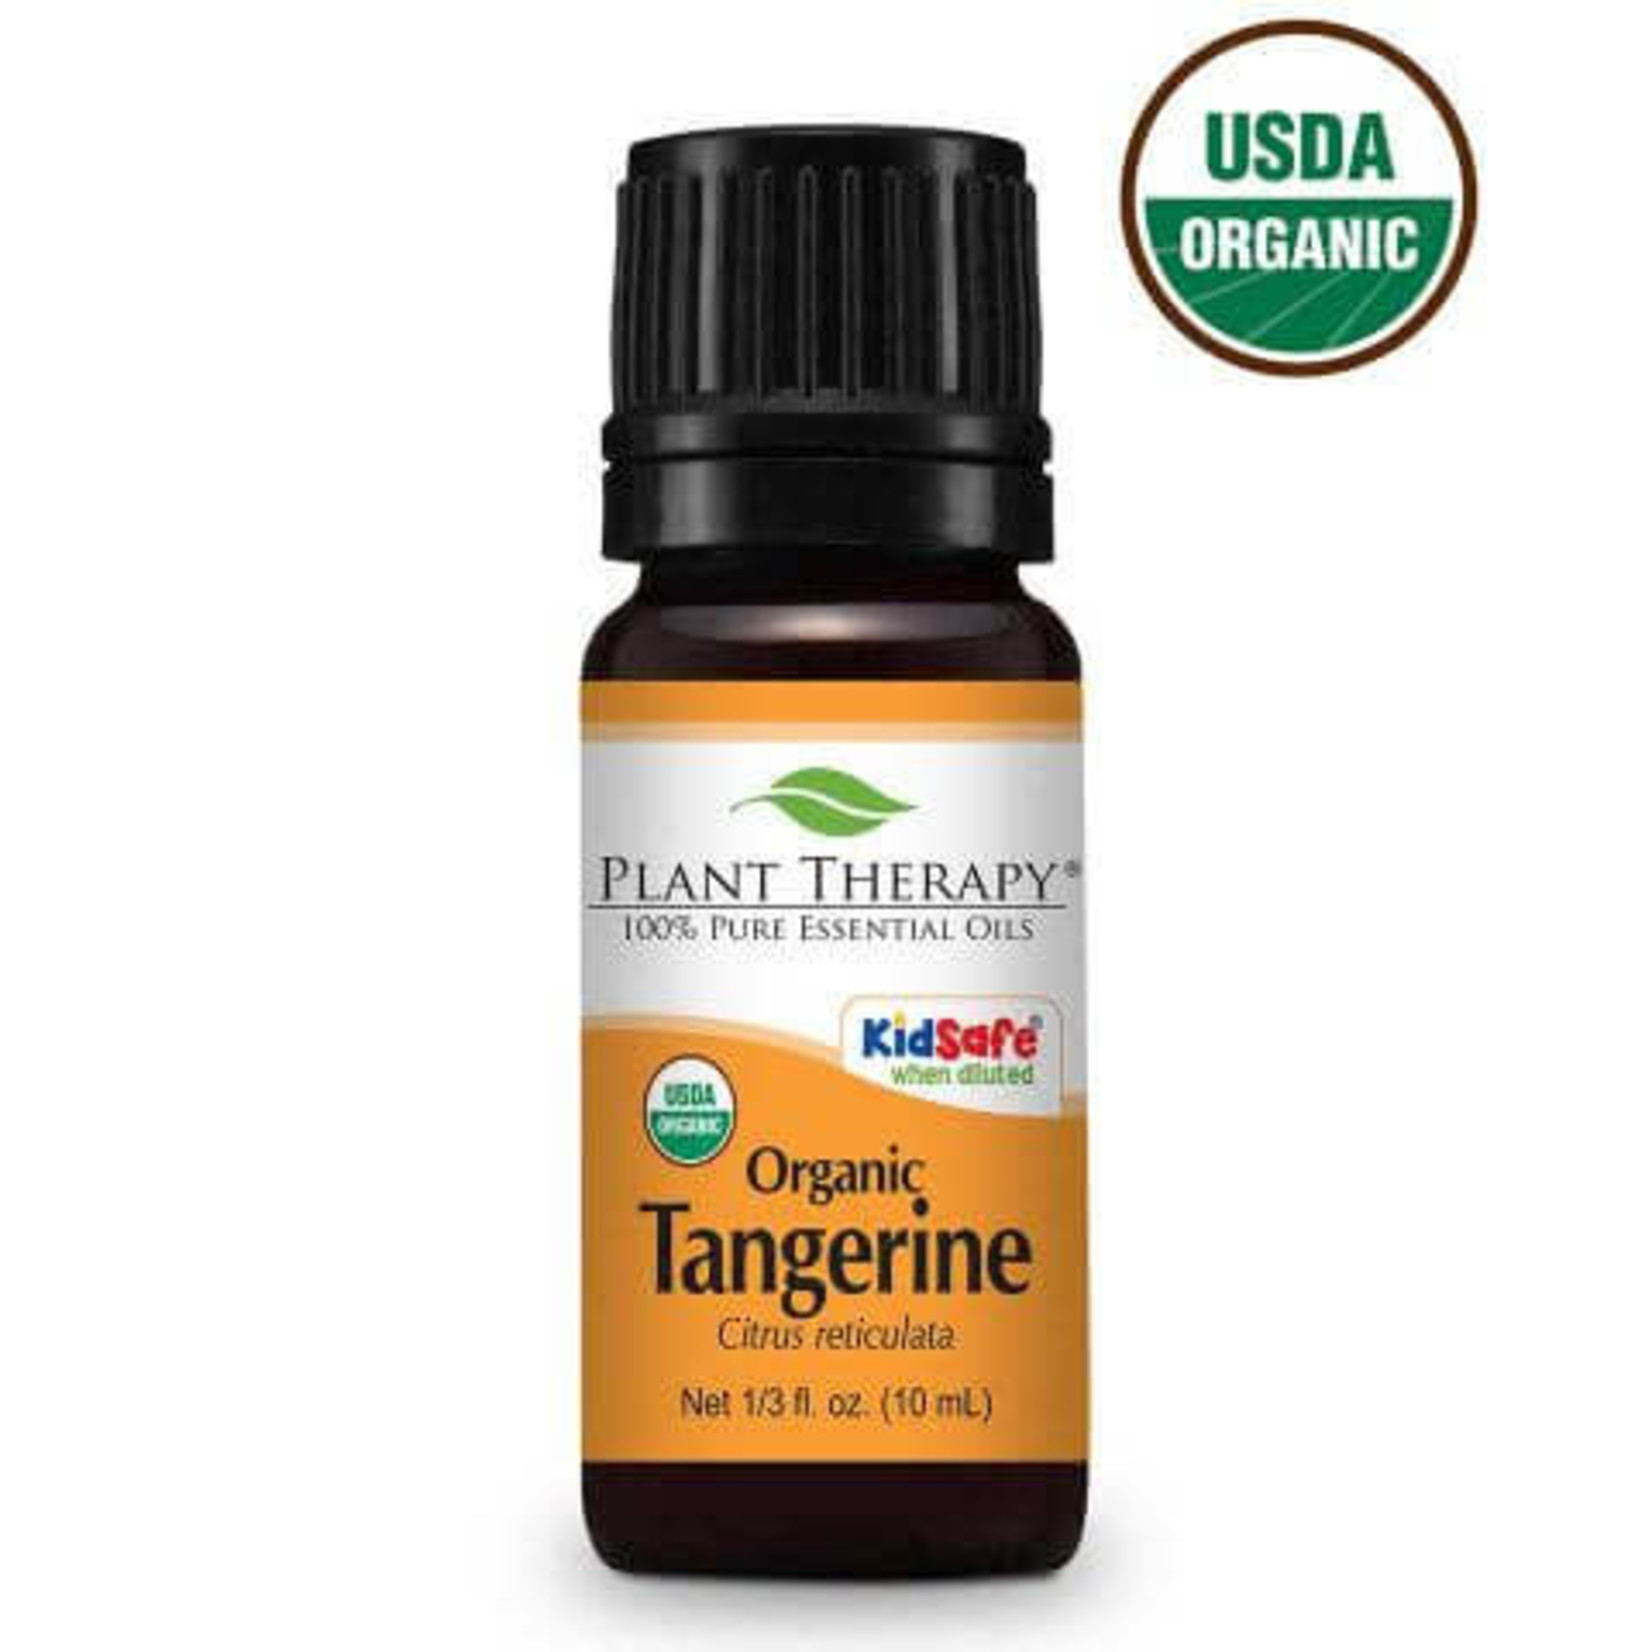 Plant Therapy PT Tangerine Organic Essential Oil 10ml